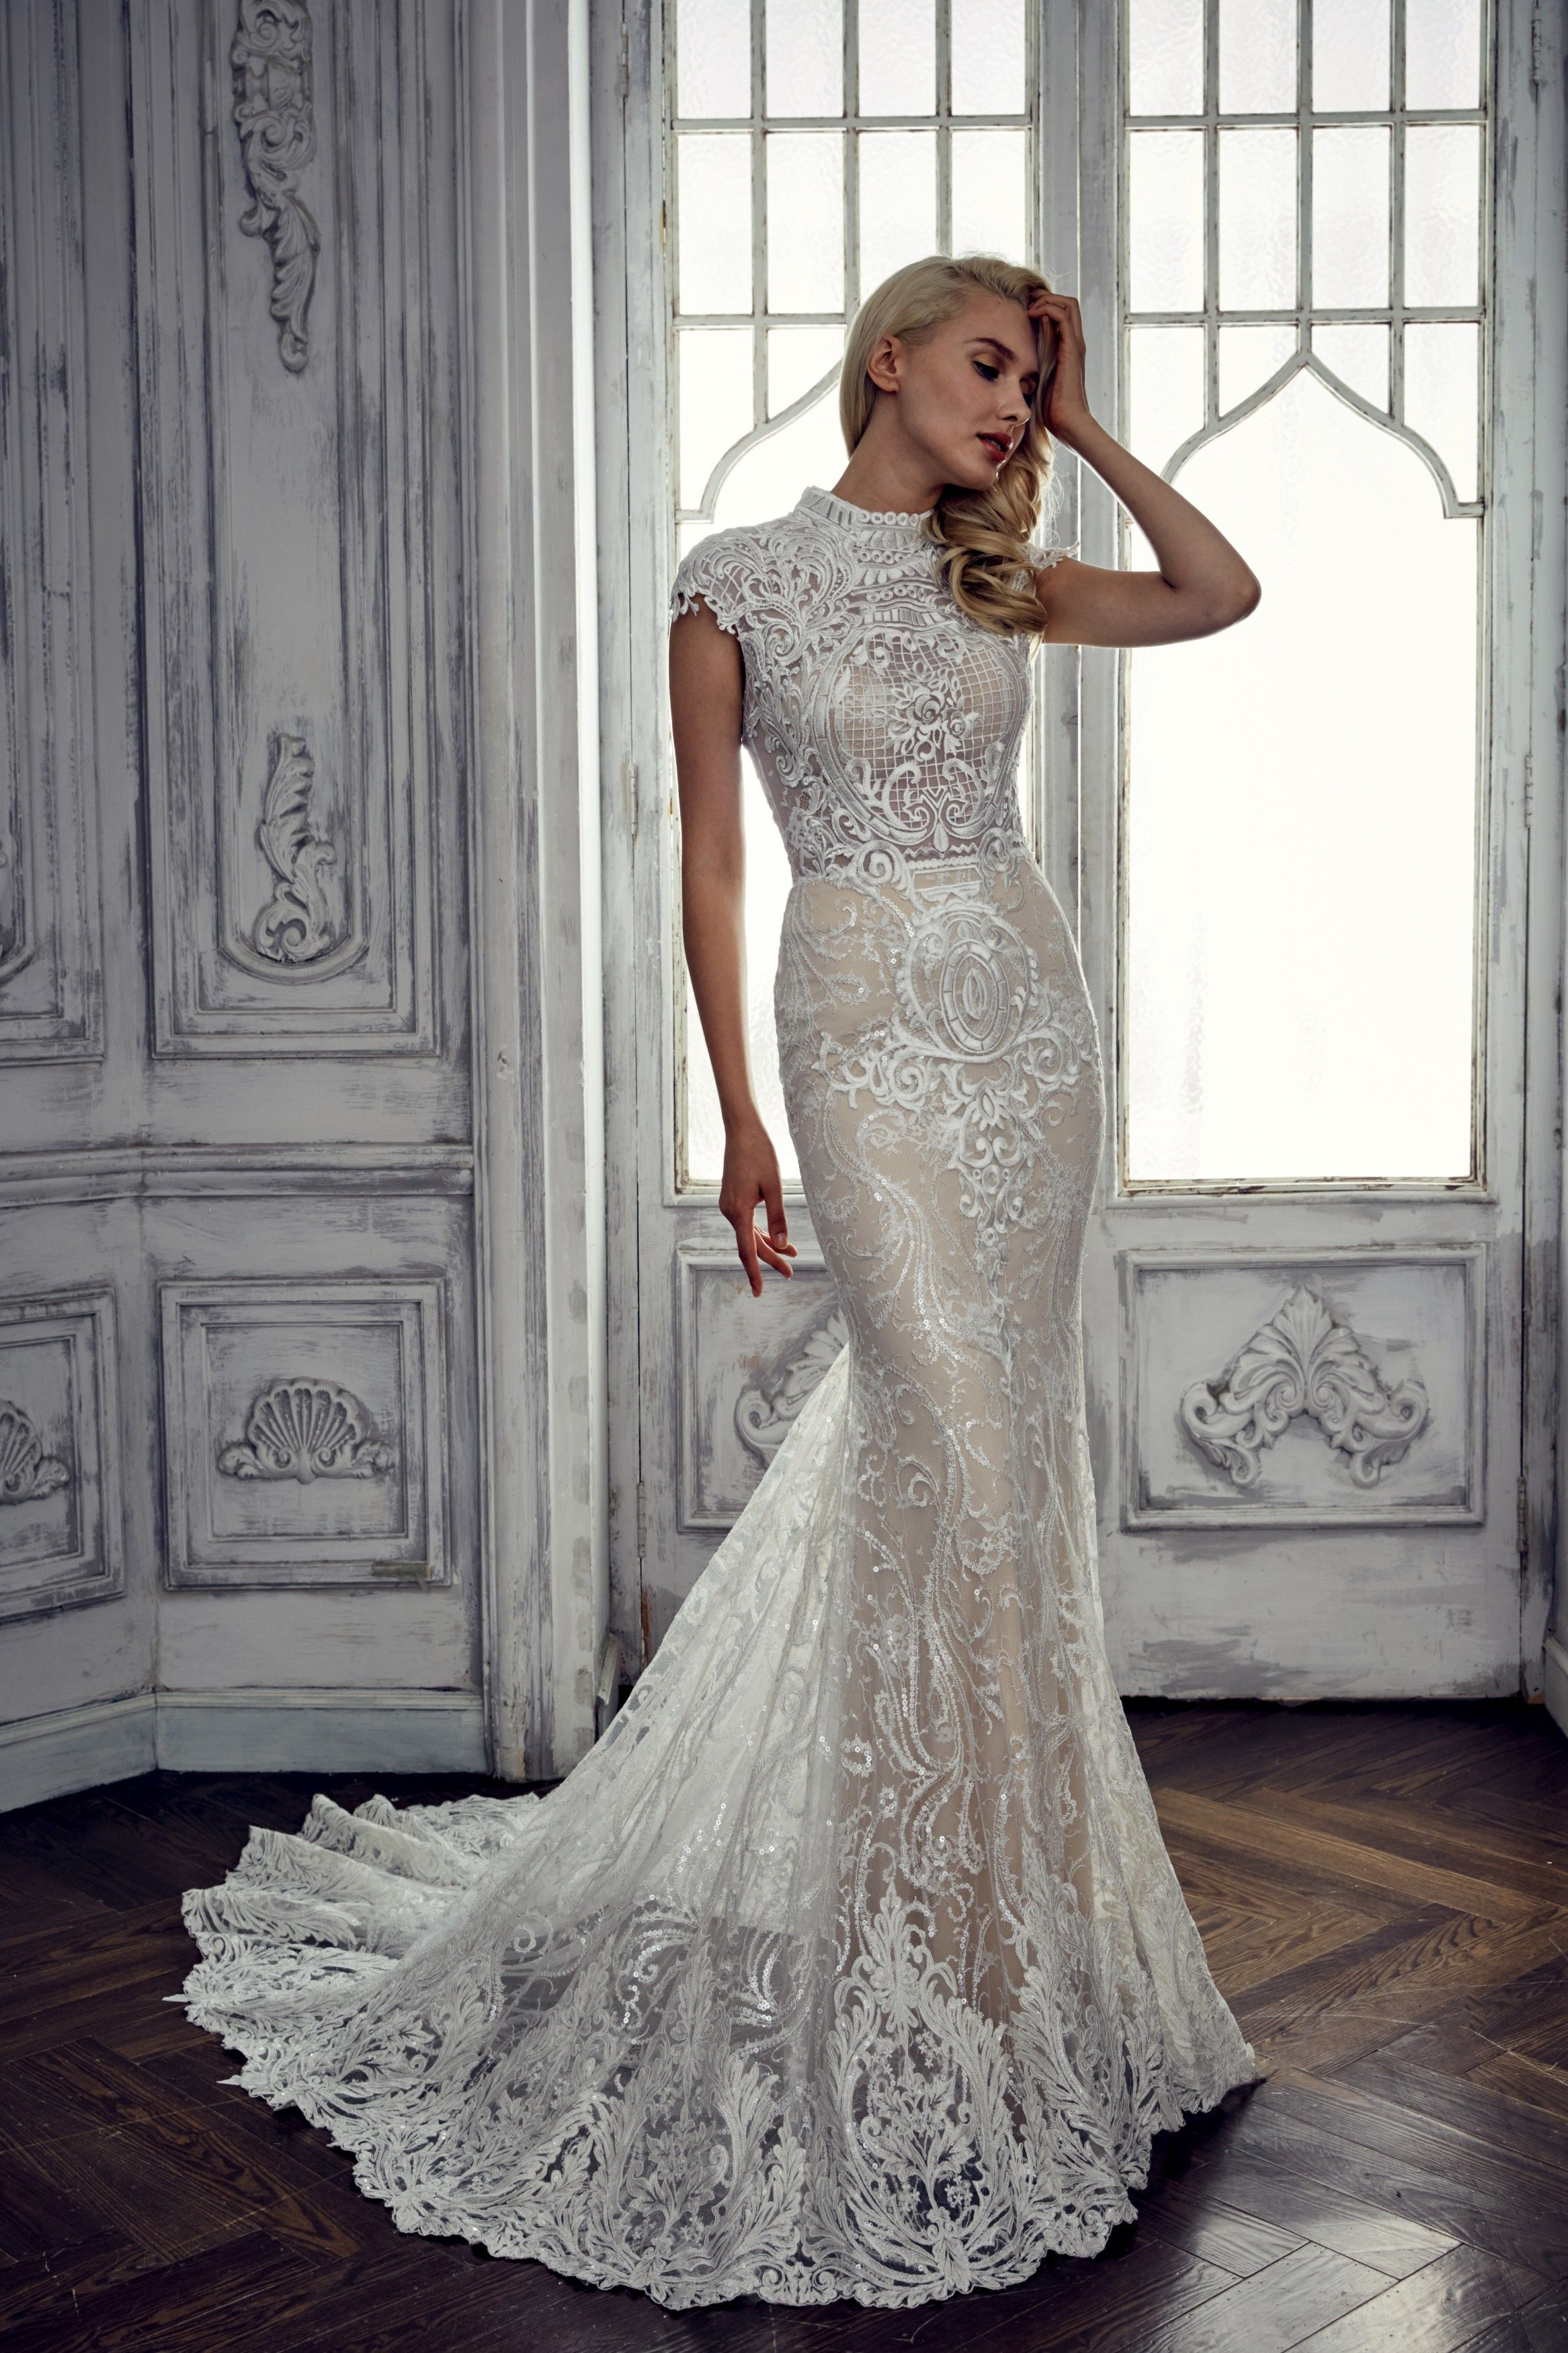 Wedding dress alterations michigan  Designers Archive  Morgan Davies Bridal  Amy  Pinterest